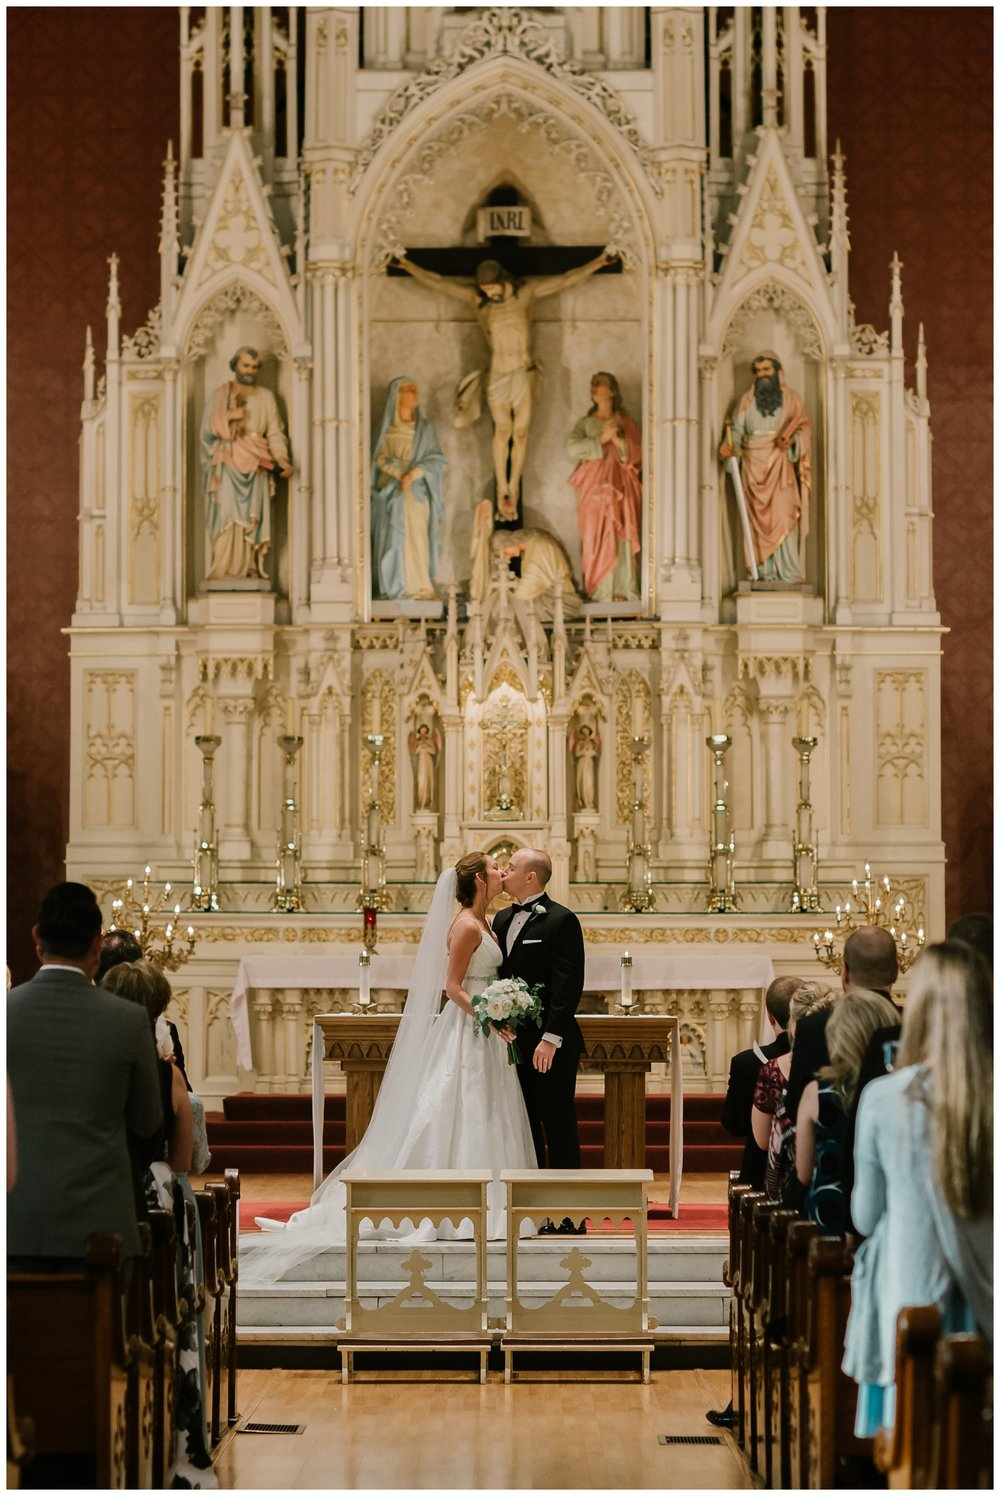 Rebecca_Shehorn_Photography_Indianapolis_Wedding_Photographer_7158.jpg